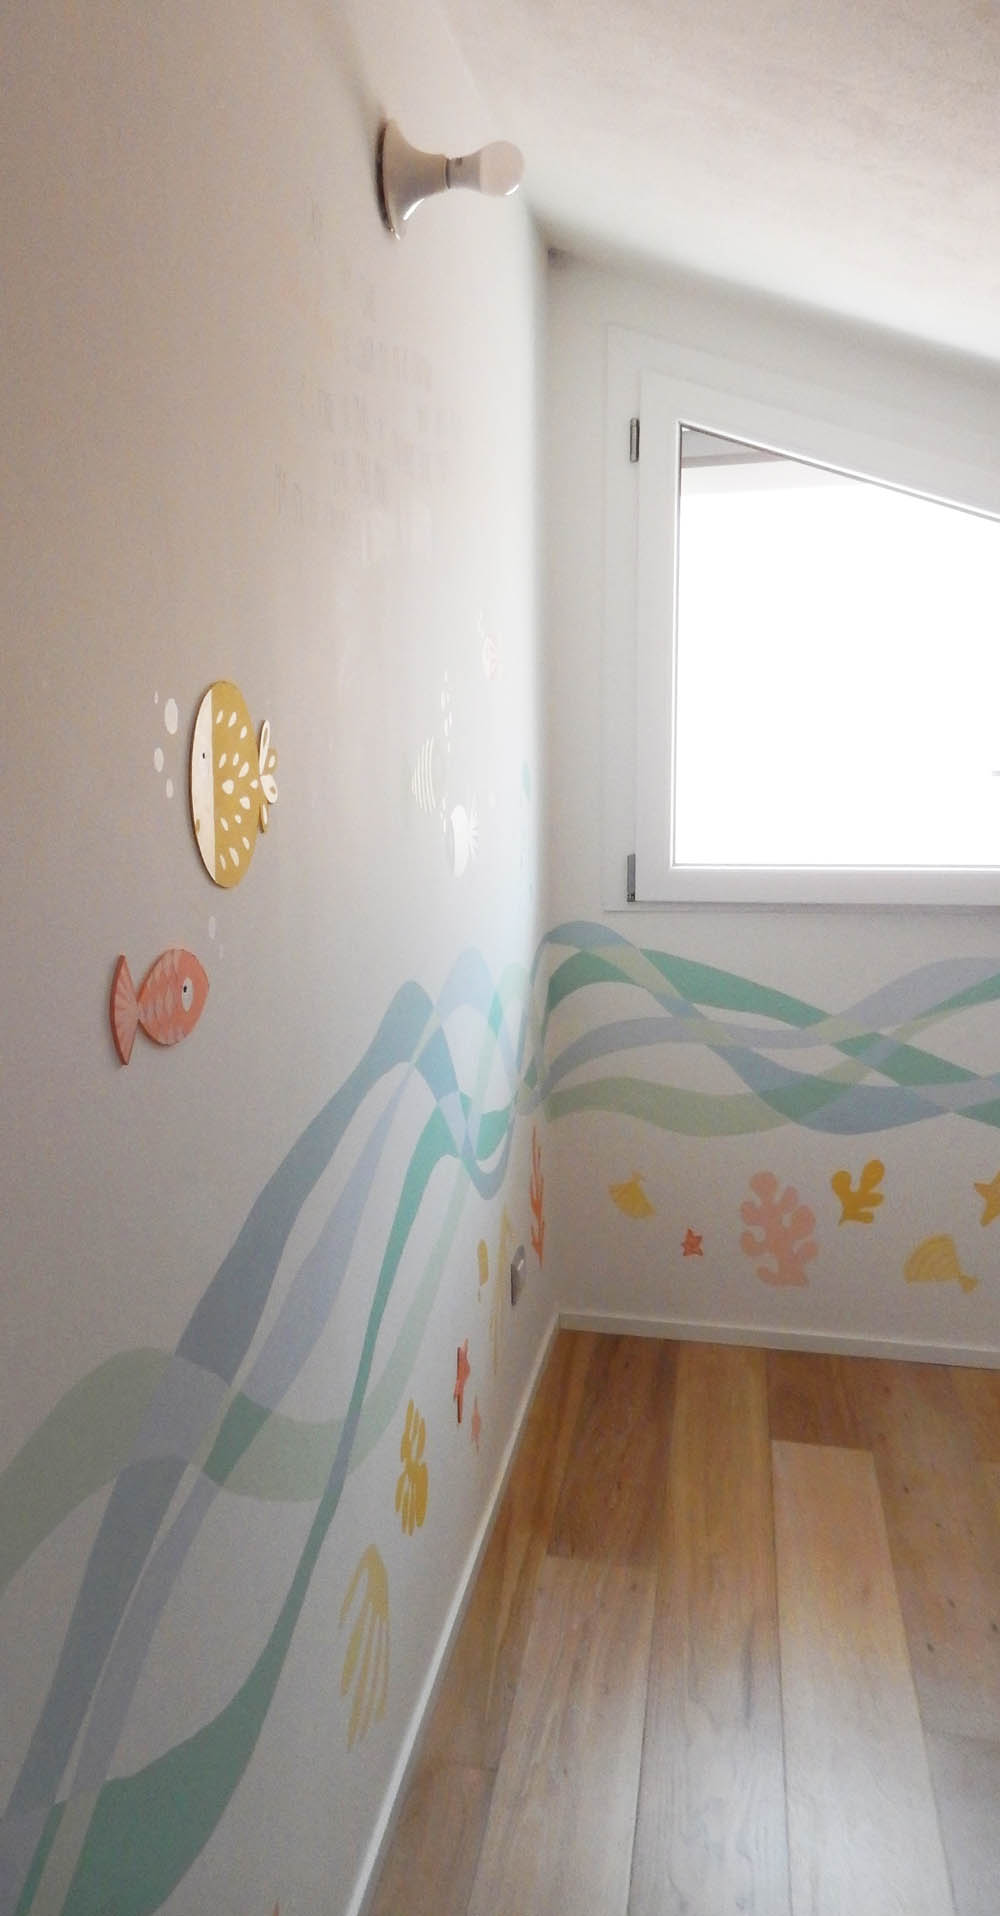 Decorazione muri interni sticker murale two puffballs - Decorazione muri interni ...